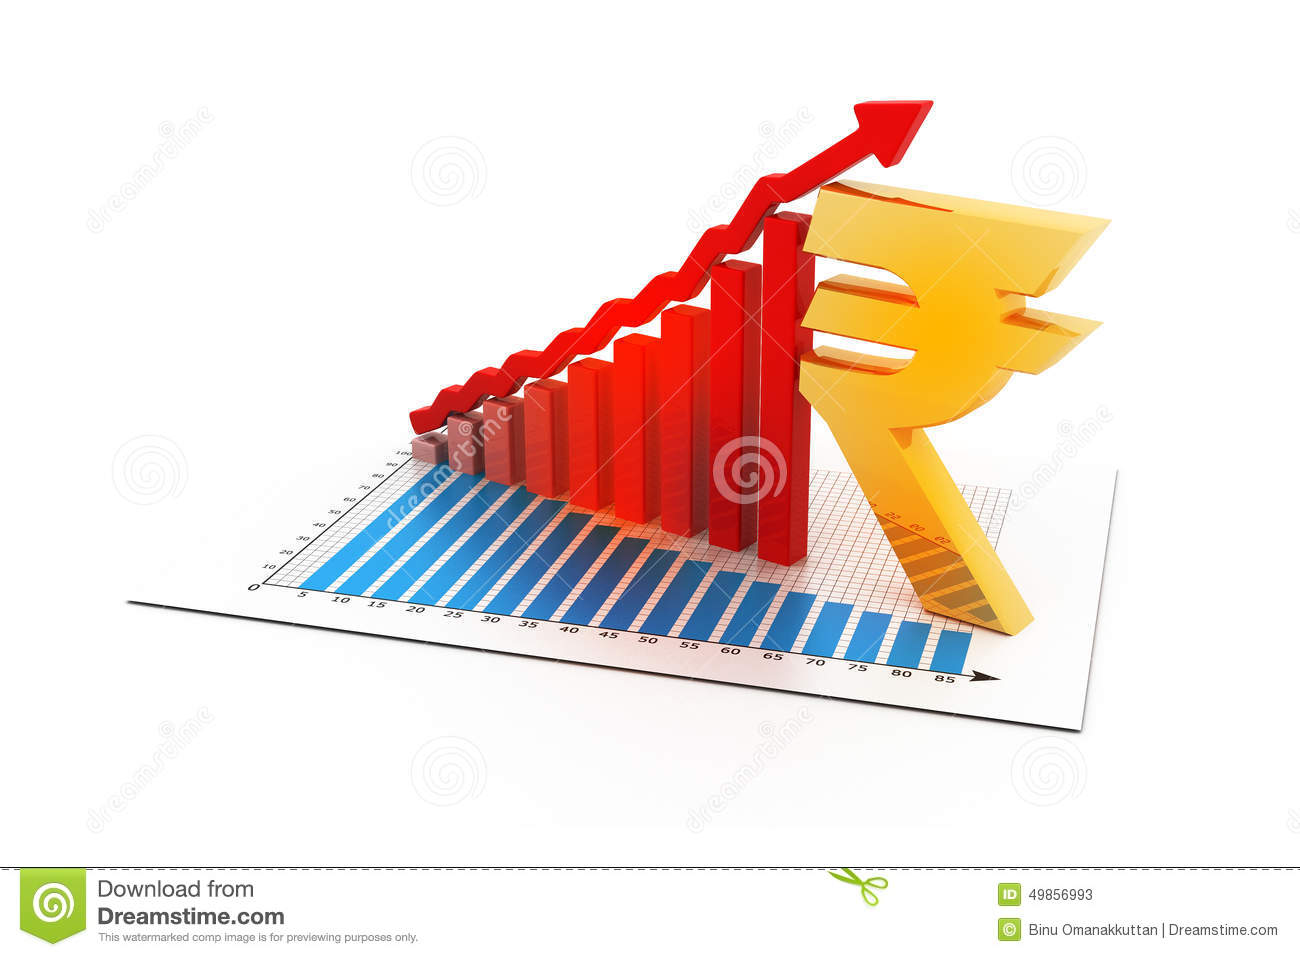 Indian rupee growth chart stock photo image of paper 63048808 business graph with indian rupee sign stock photos nvjuhfo Gallery